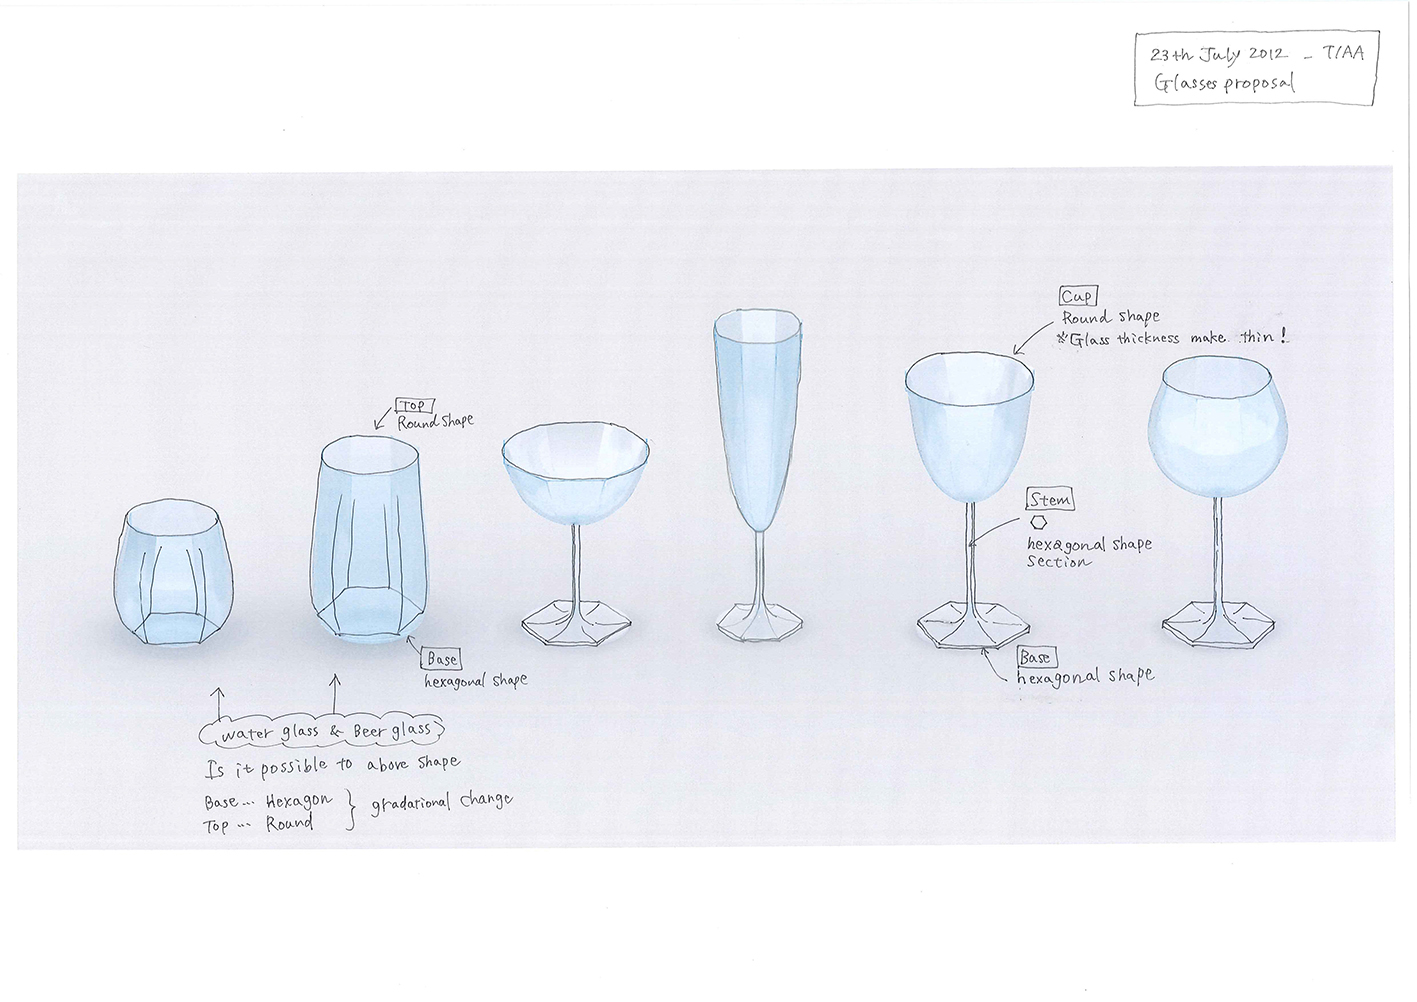 Toyo Ito, 2011-2012. Glass set. Concept Sketch.